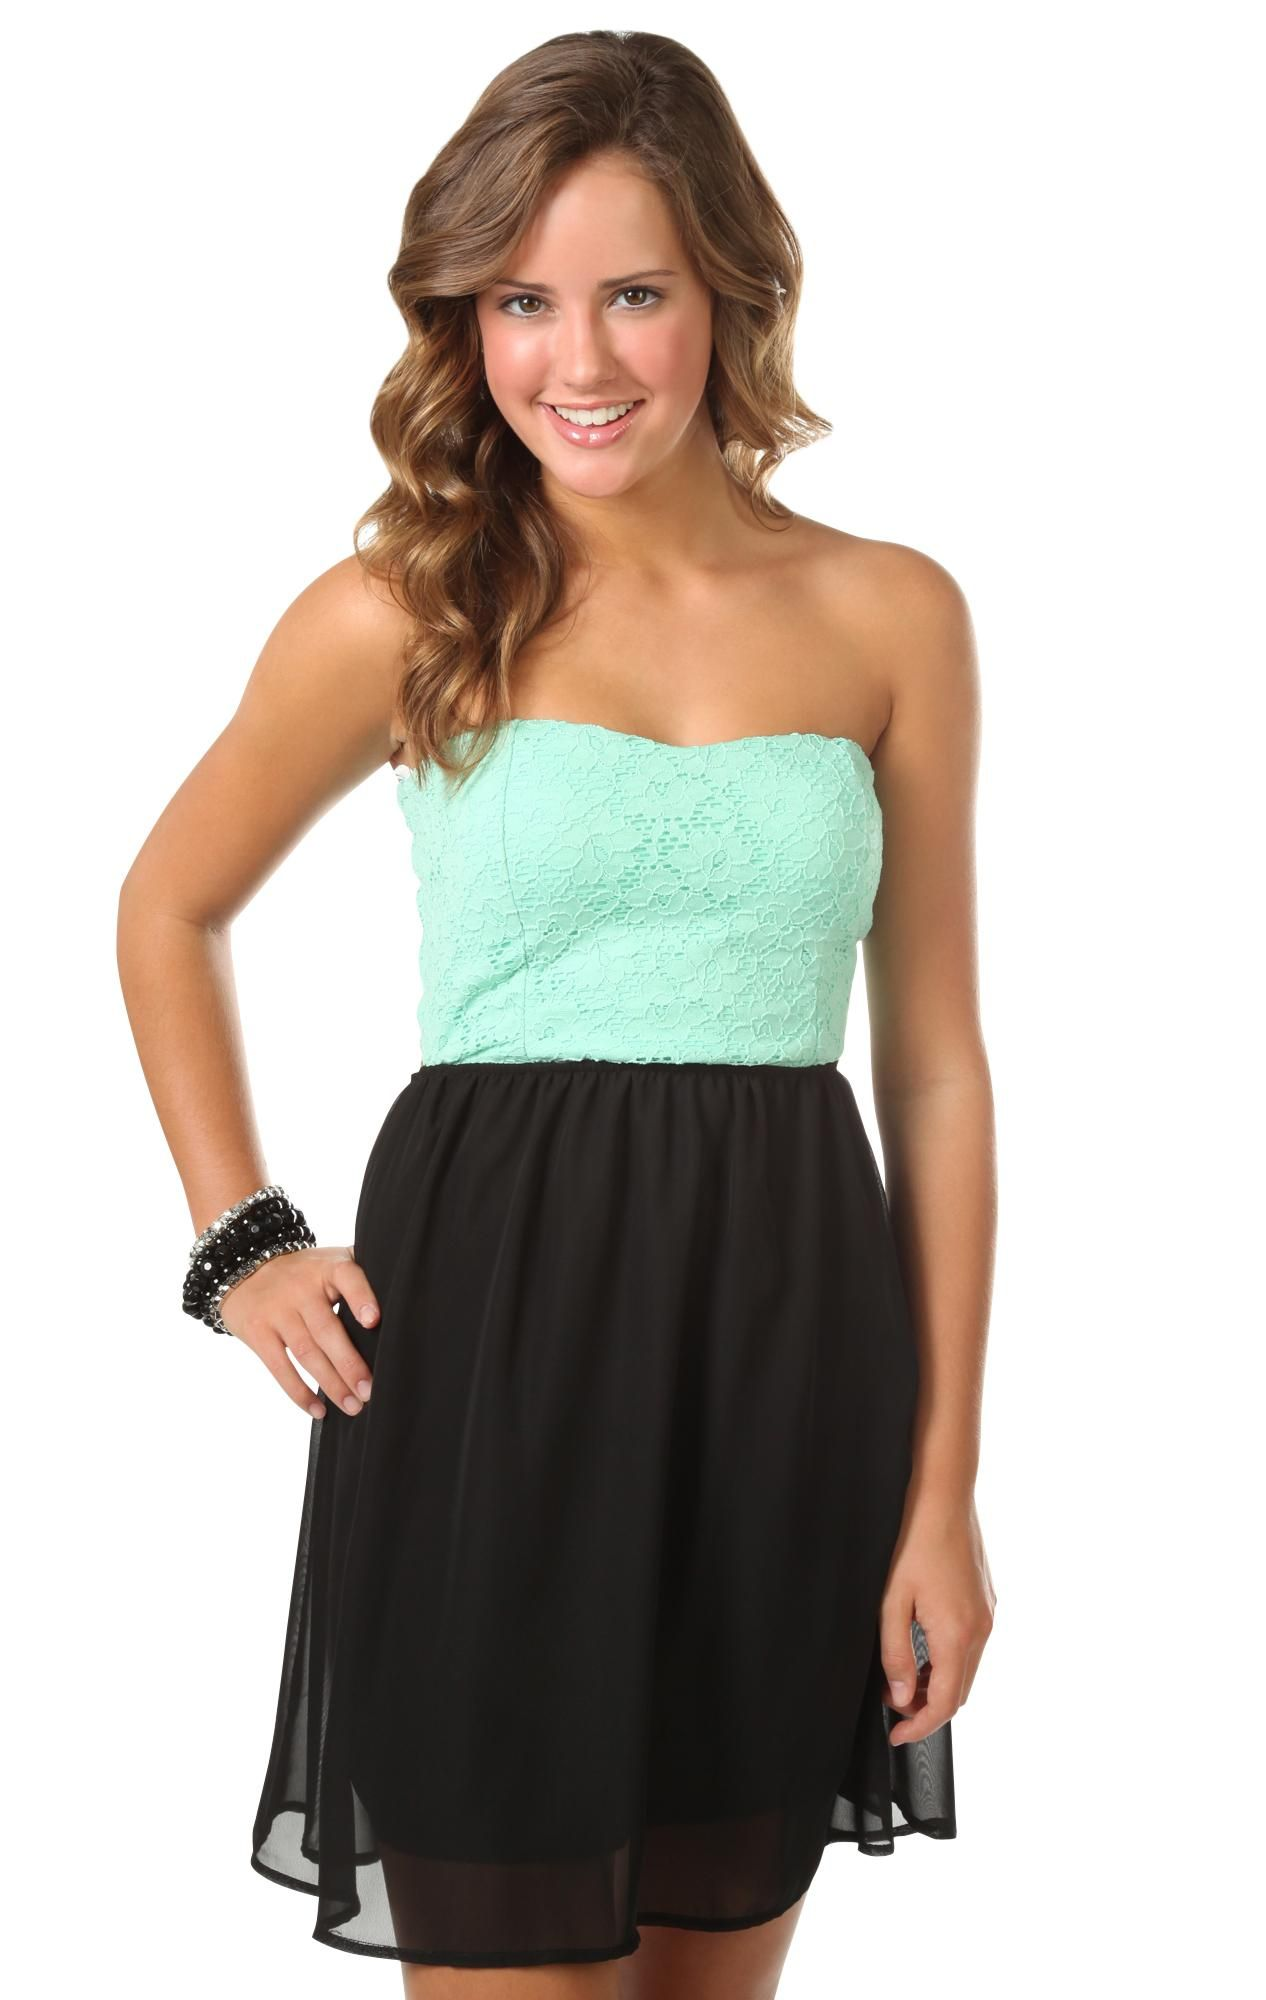 c3aa84c1f4 strapless lace color block a-line dress with bow back accent in mint green  and coral